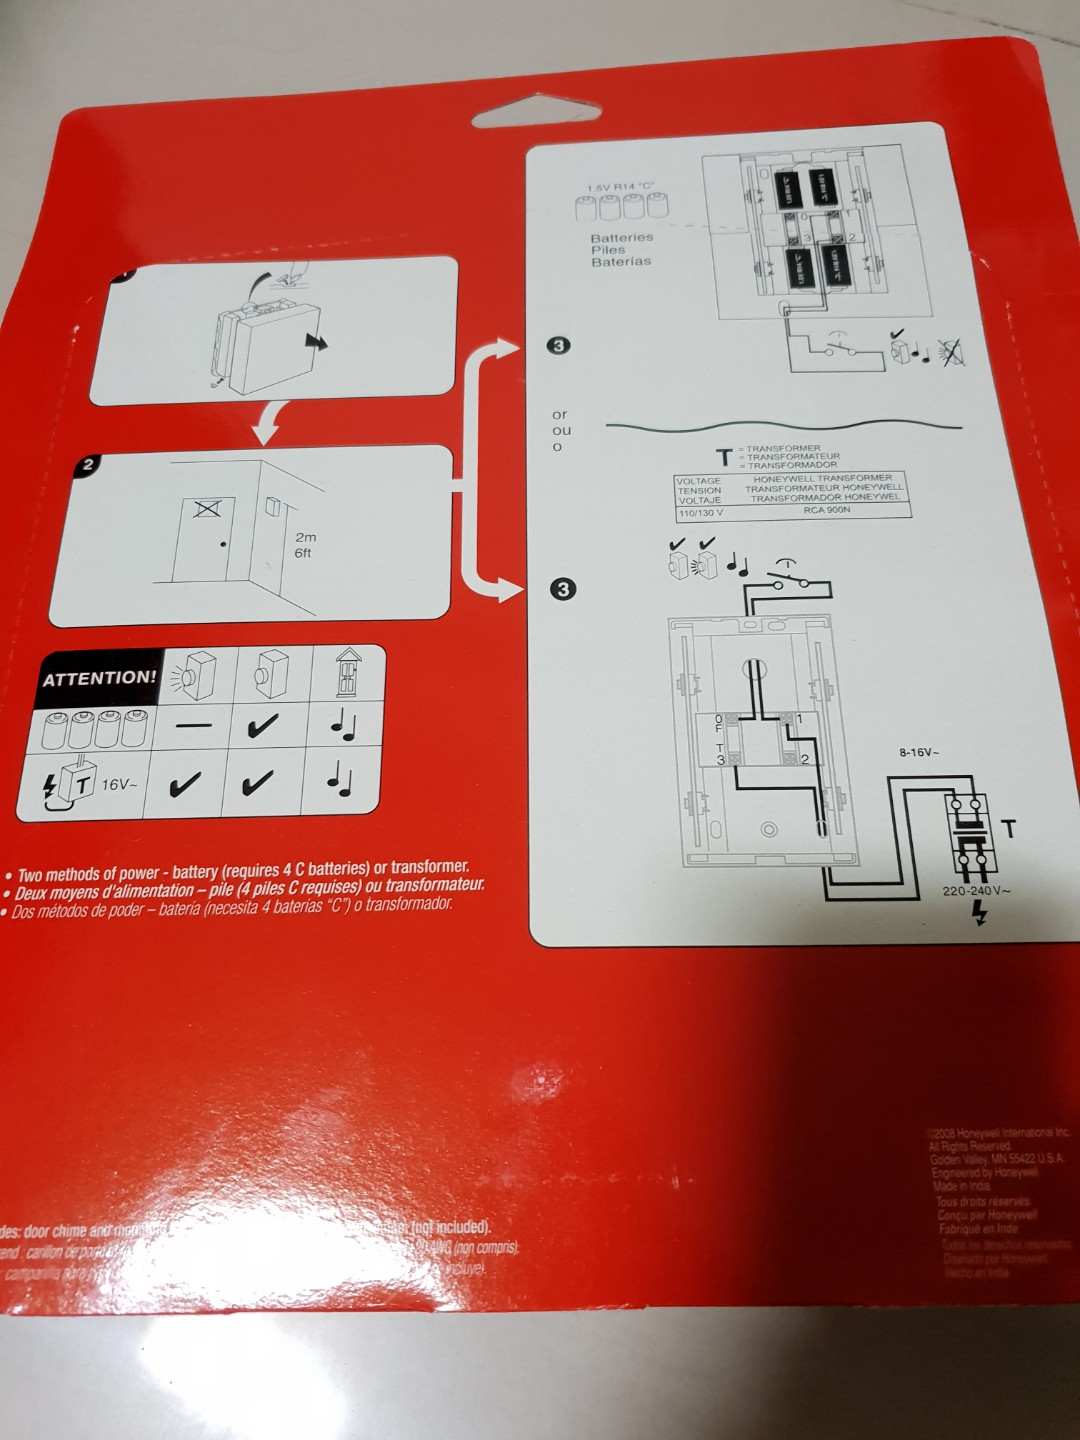 Honeywell Wired Door Chime White RCW100N1000/N, Electronics, Others ...